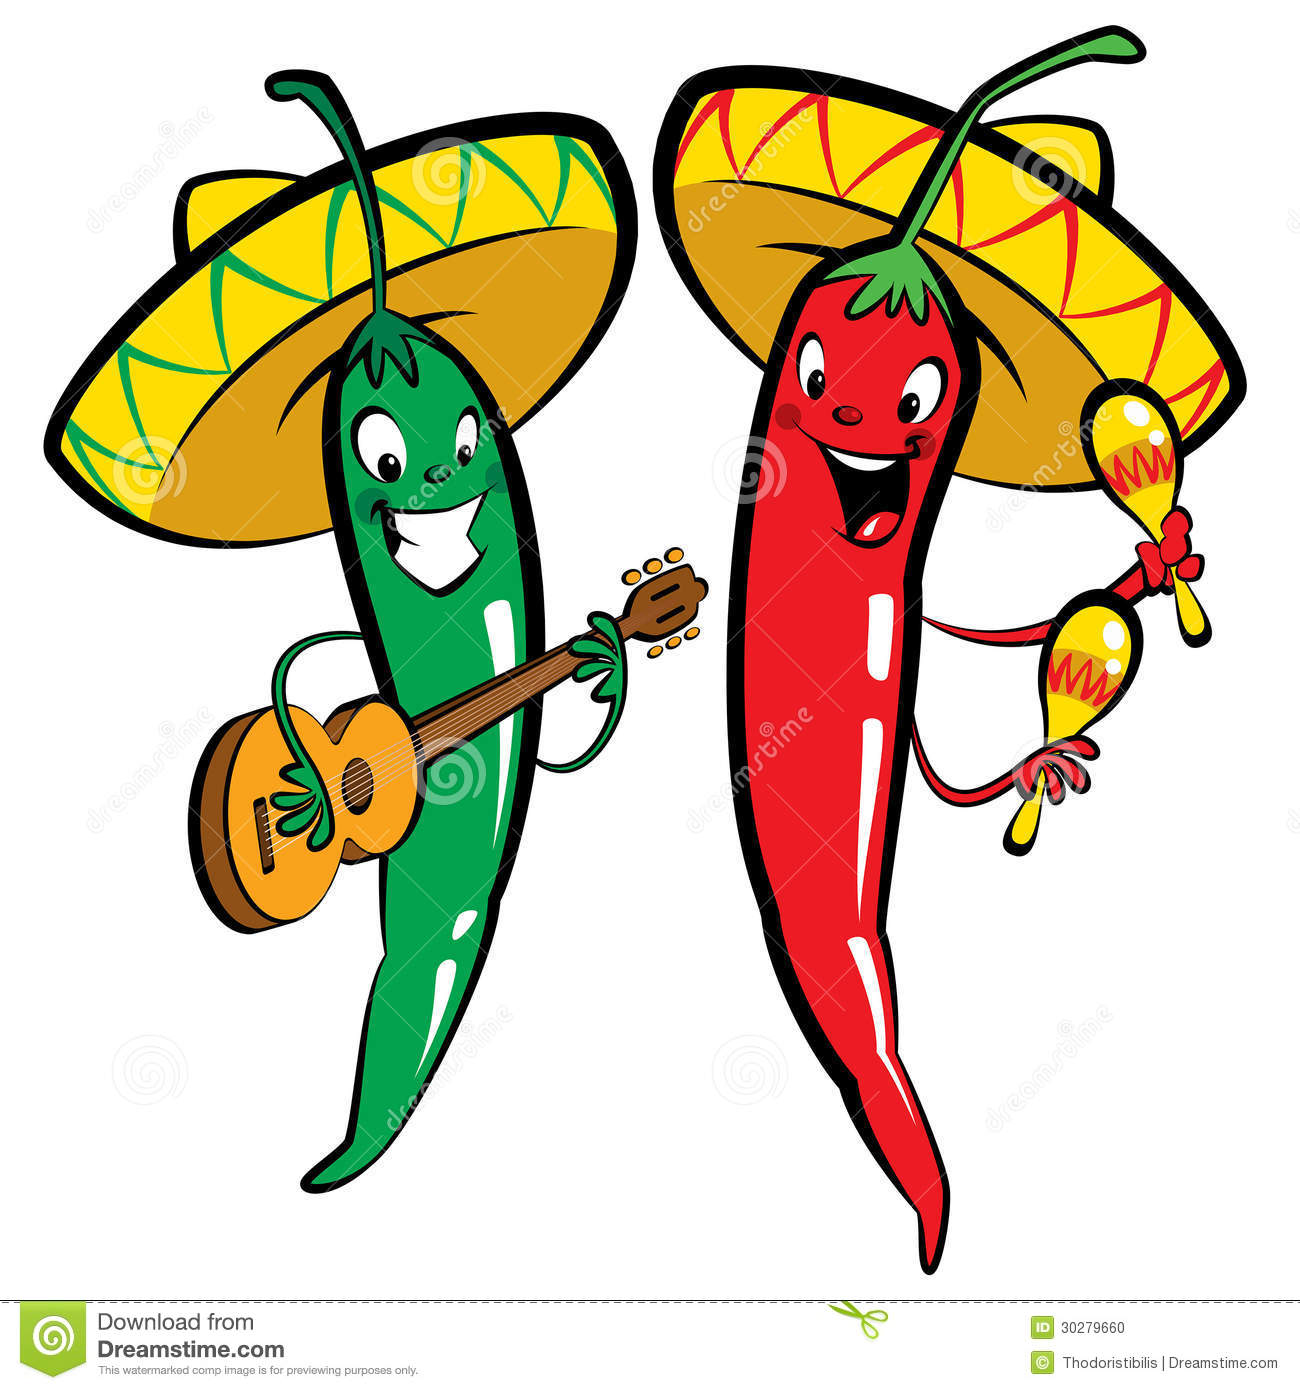 Red and green hot chili character pepper-Red and green hot chili character peppers music group Stock Photo-6